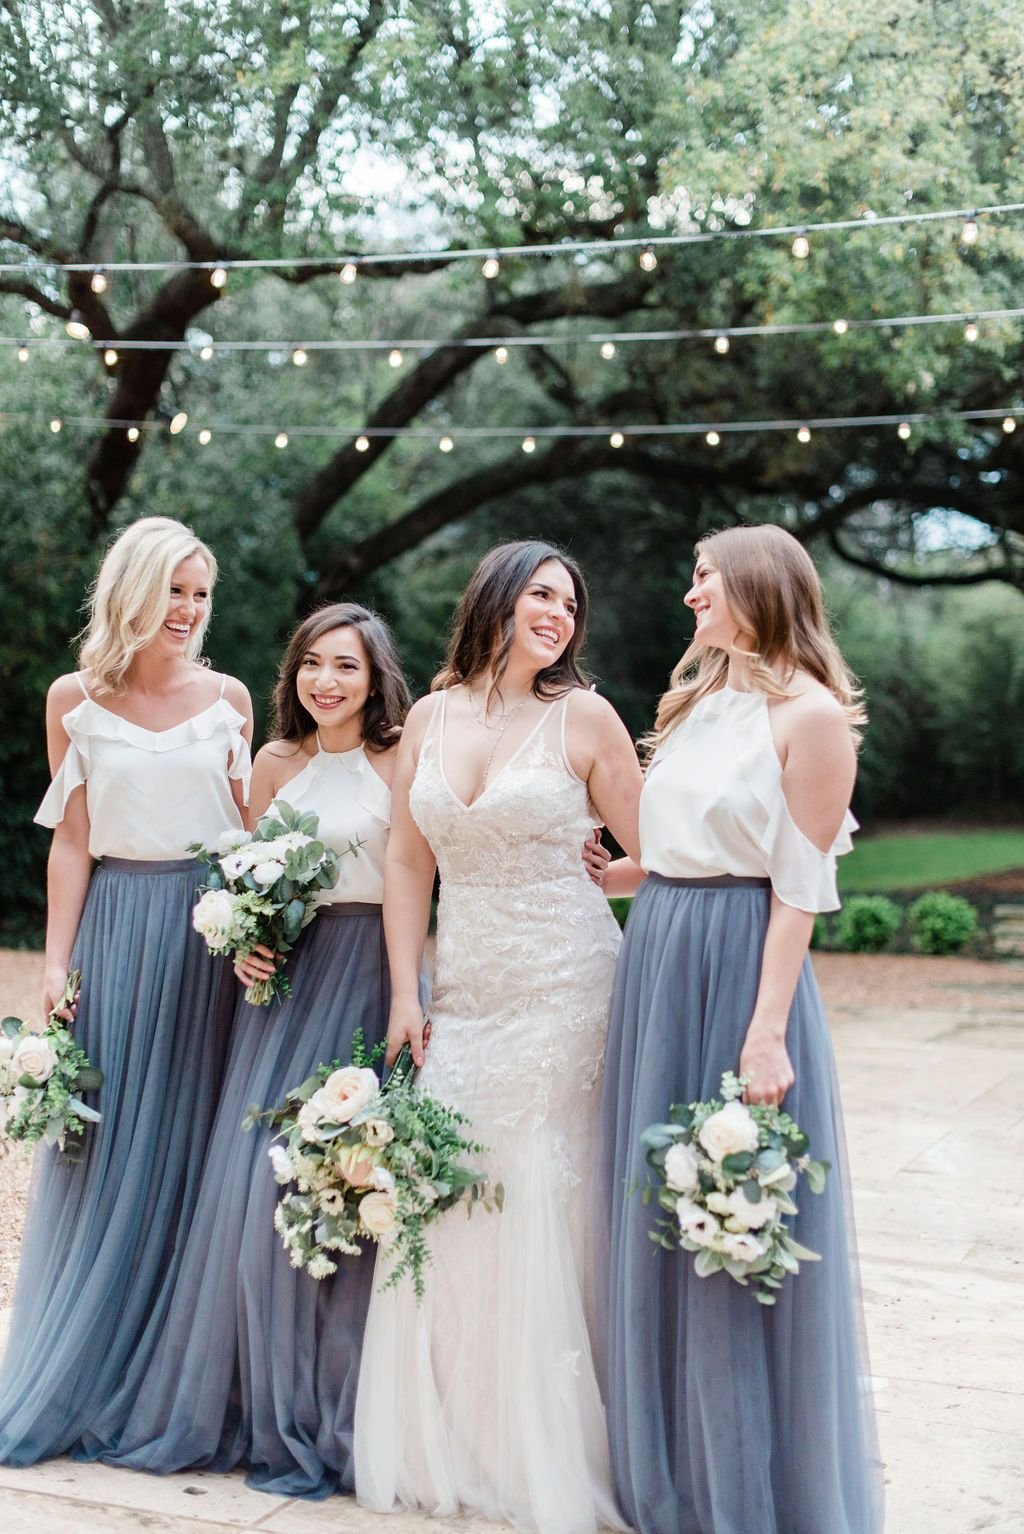 Off The Shoulder Chiffon Bridesmaid Tops Paired With Our Skylar Tulle Skirt In Shades D Tulle Skirt Bridesmaid Bridesmaid Dresses Boho Bridesmaid Skirt And Top